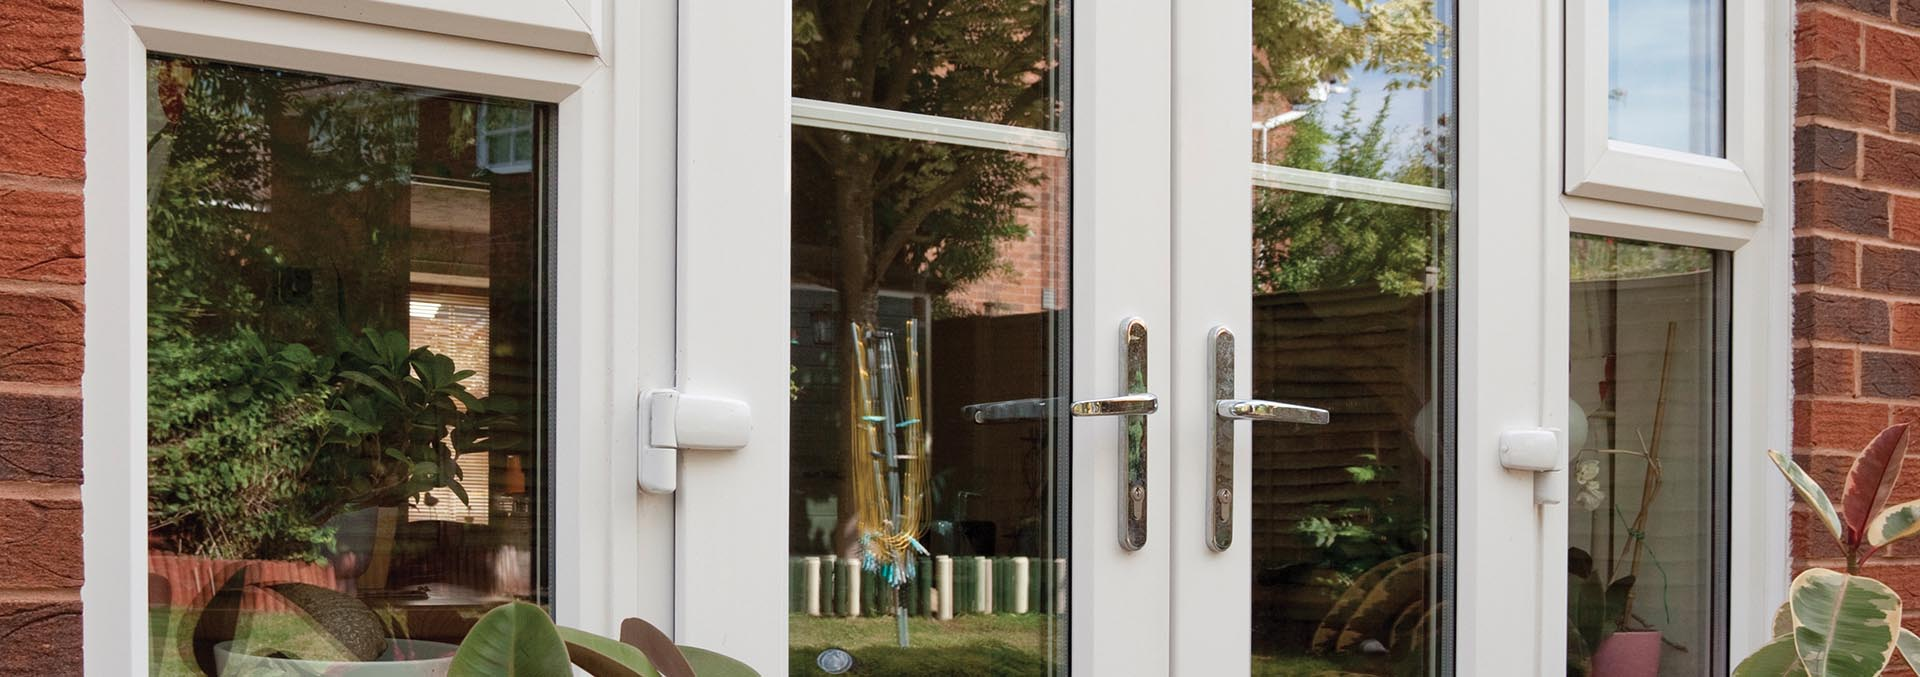 Patio french doors smiths glass white upvc french doors with astragal bars for a traditional look rubansaba